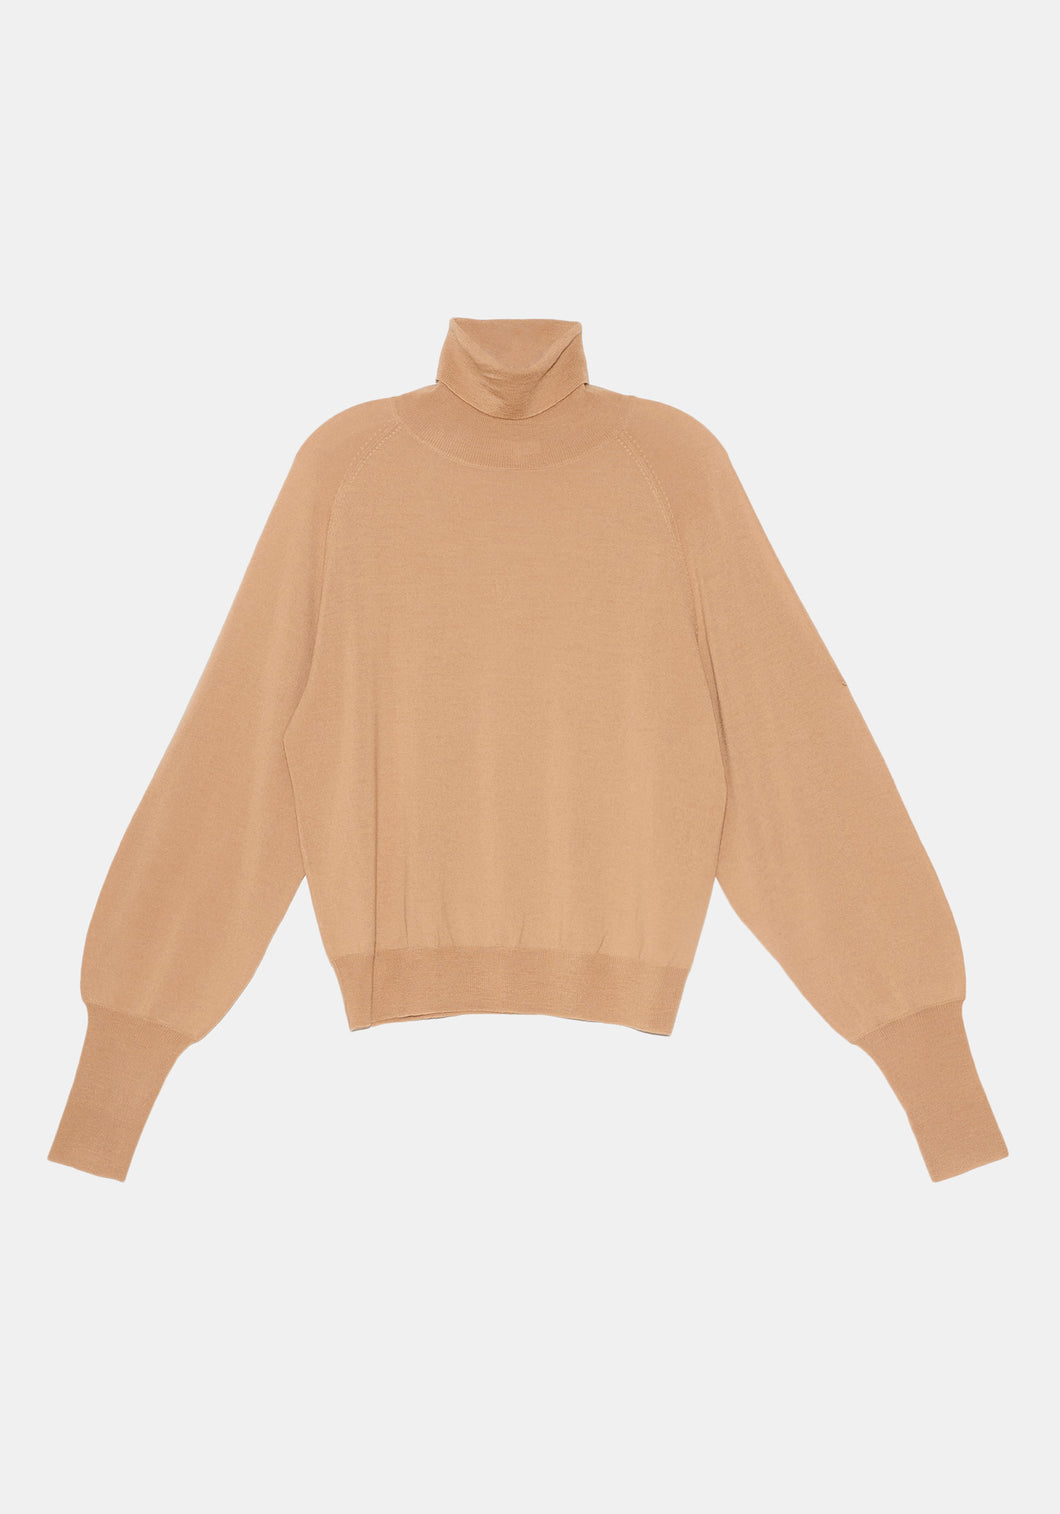 Rosalee Turtleneck Sweater